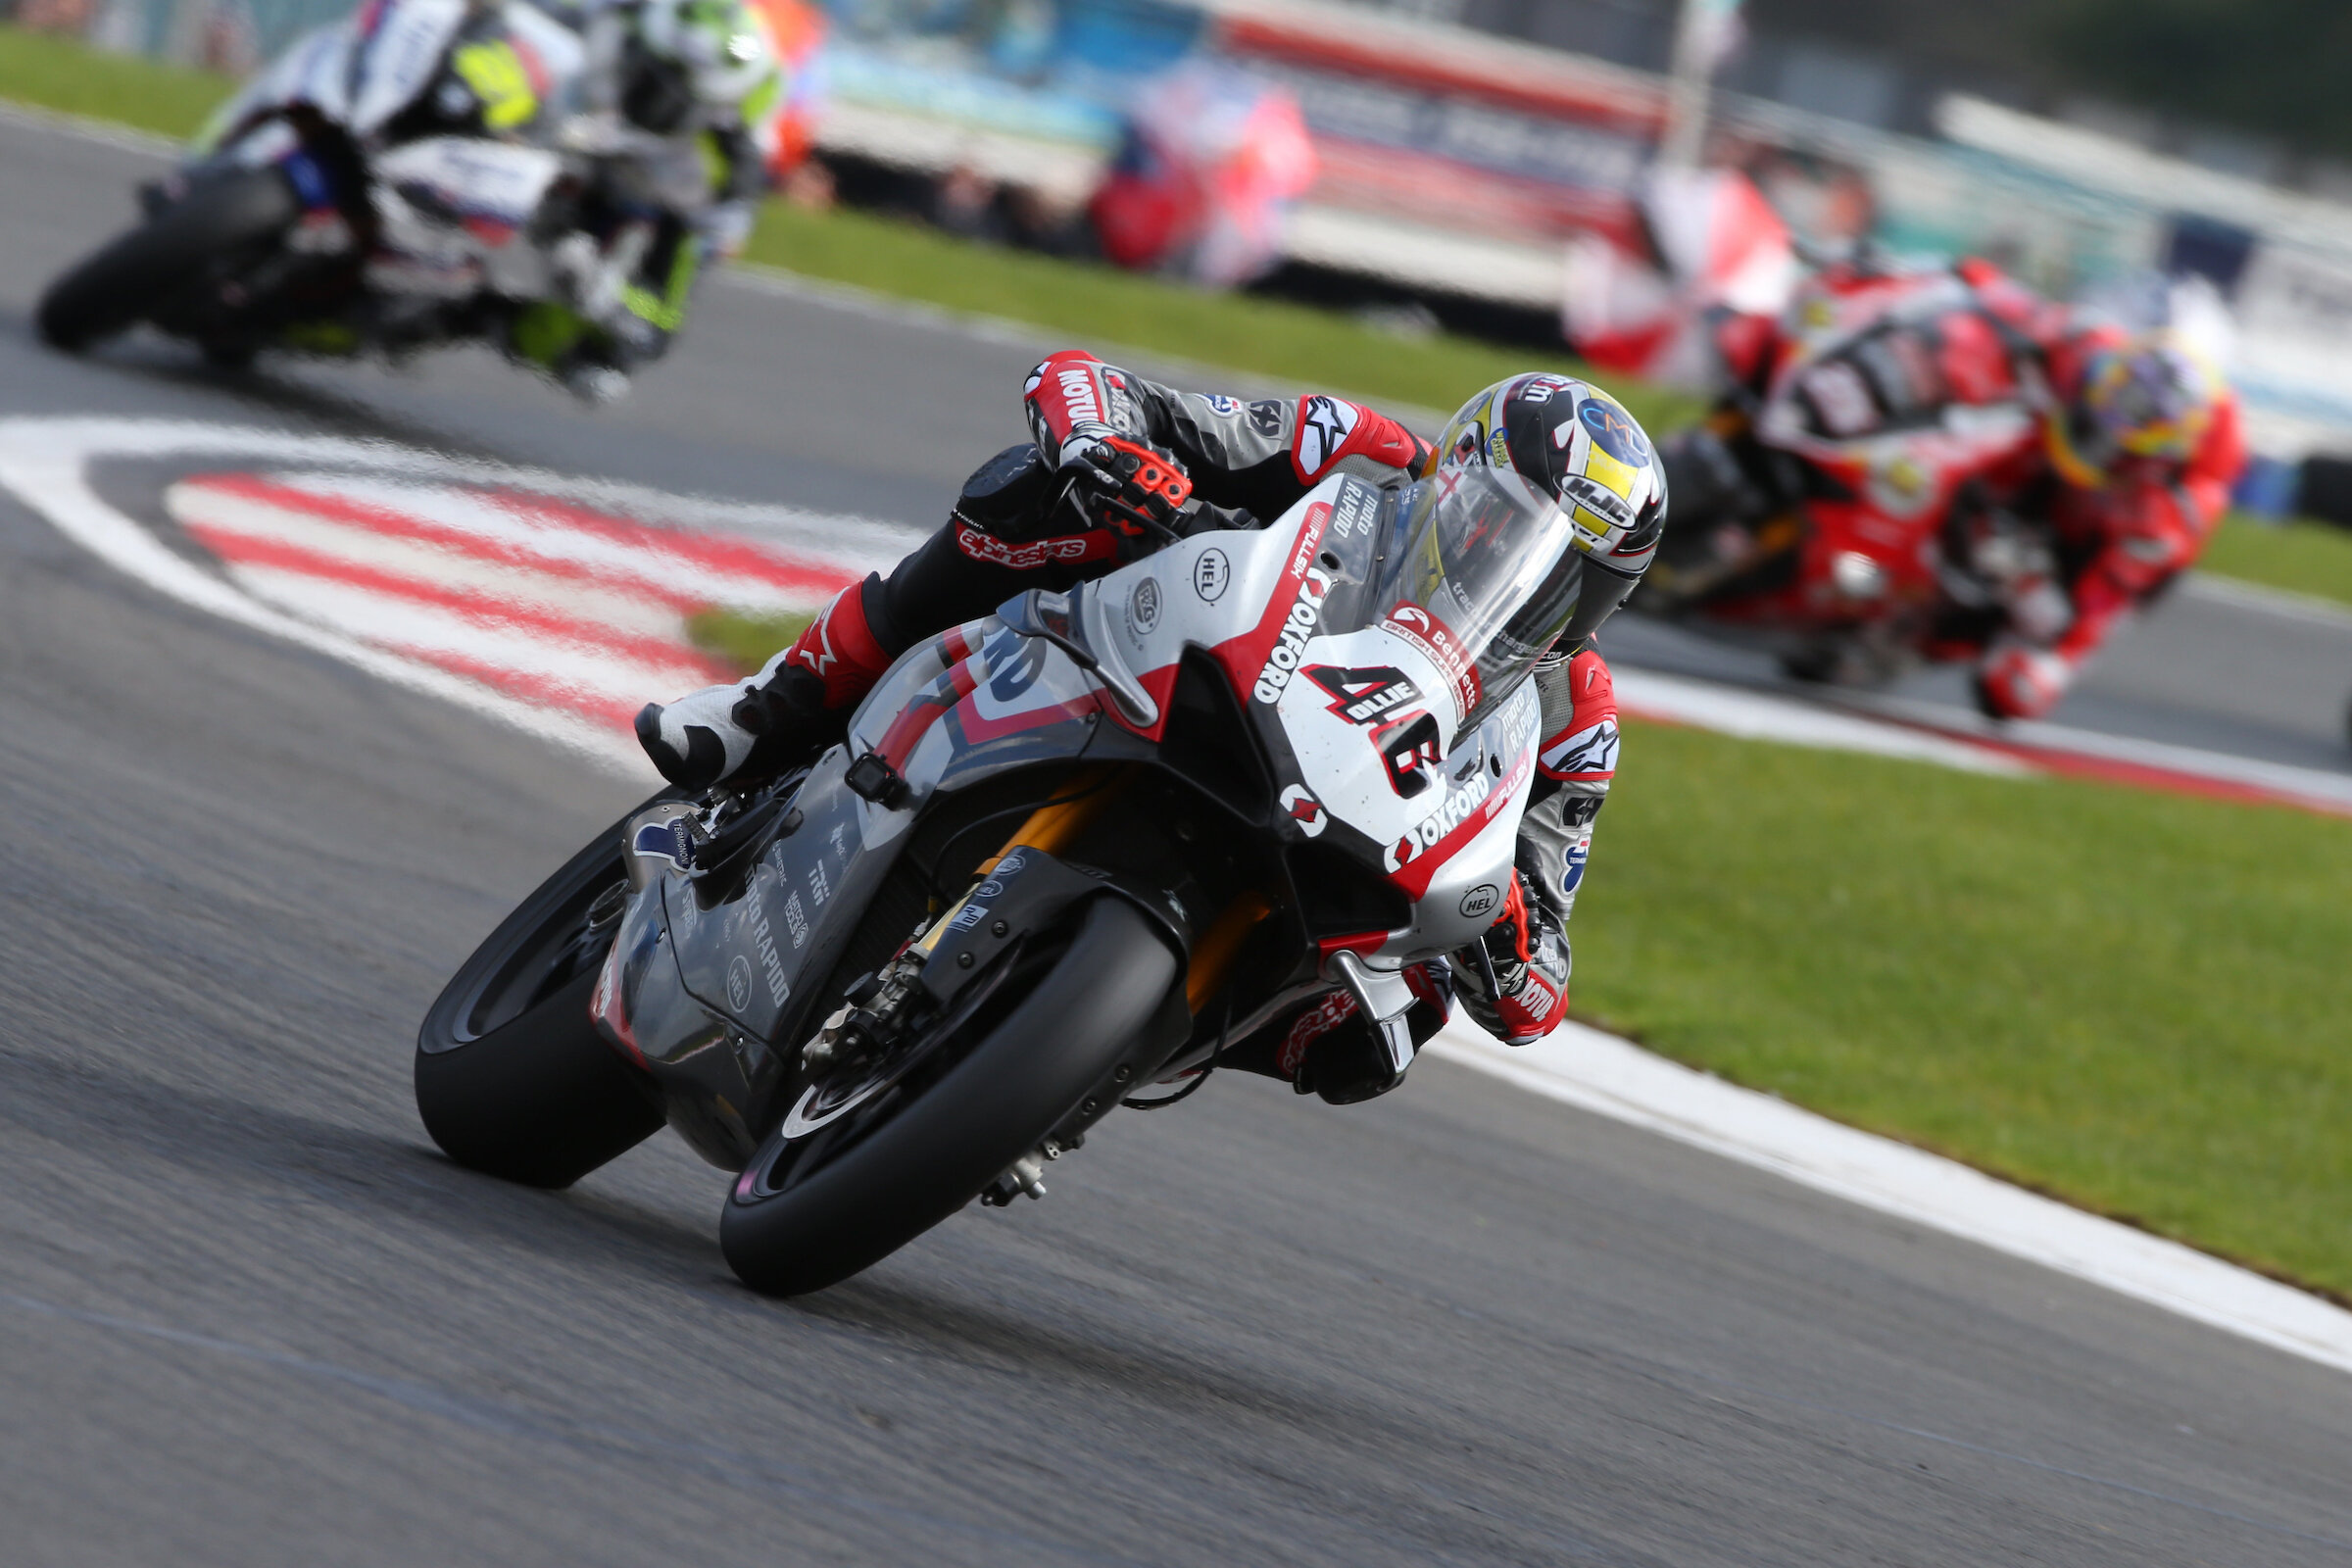 Tommy Bridewell leads Iddon and Brookes at Donington